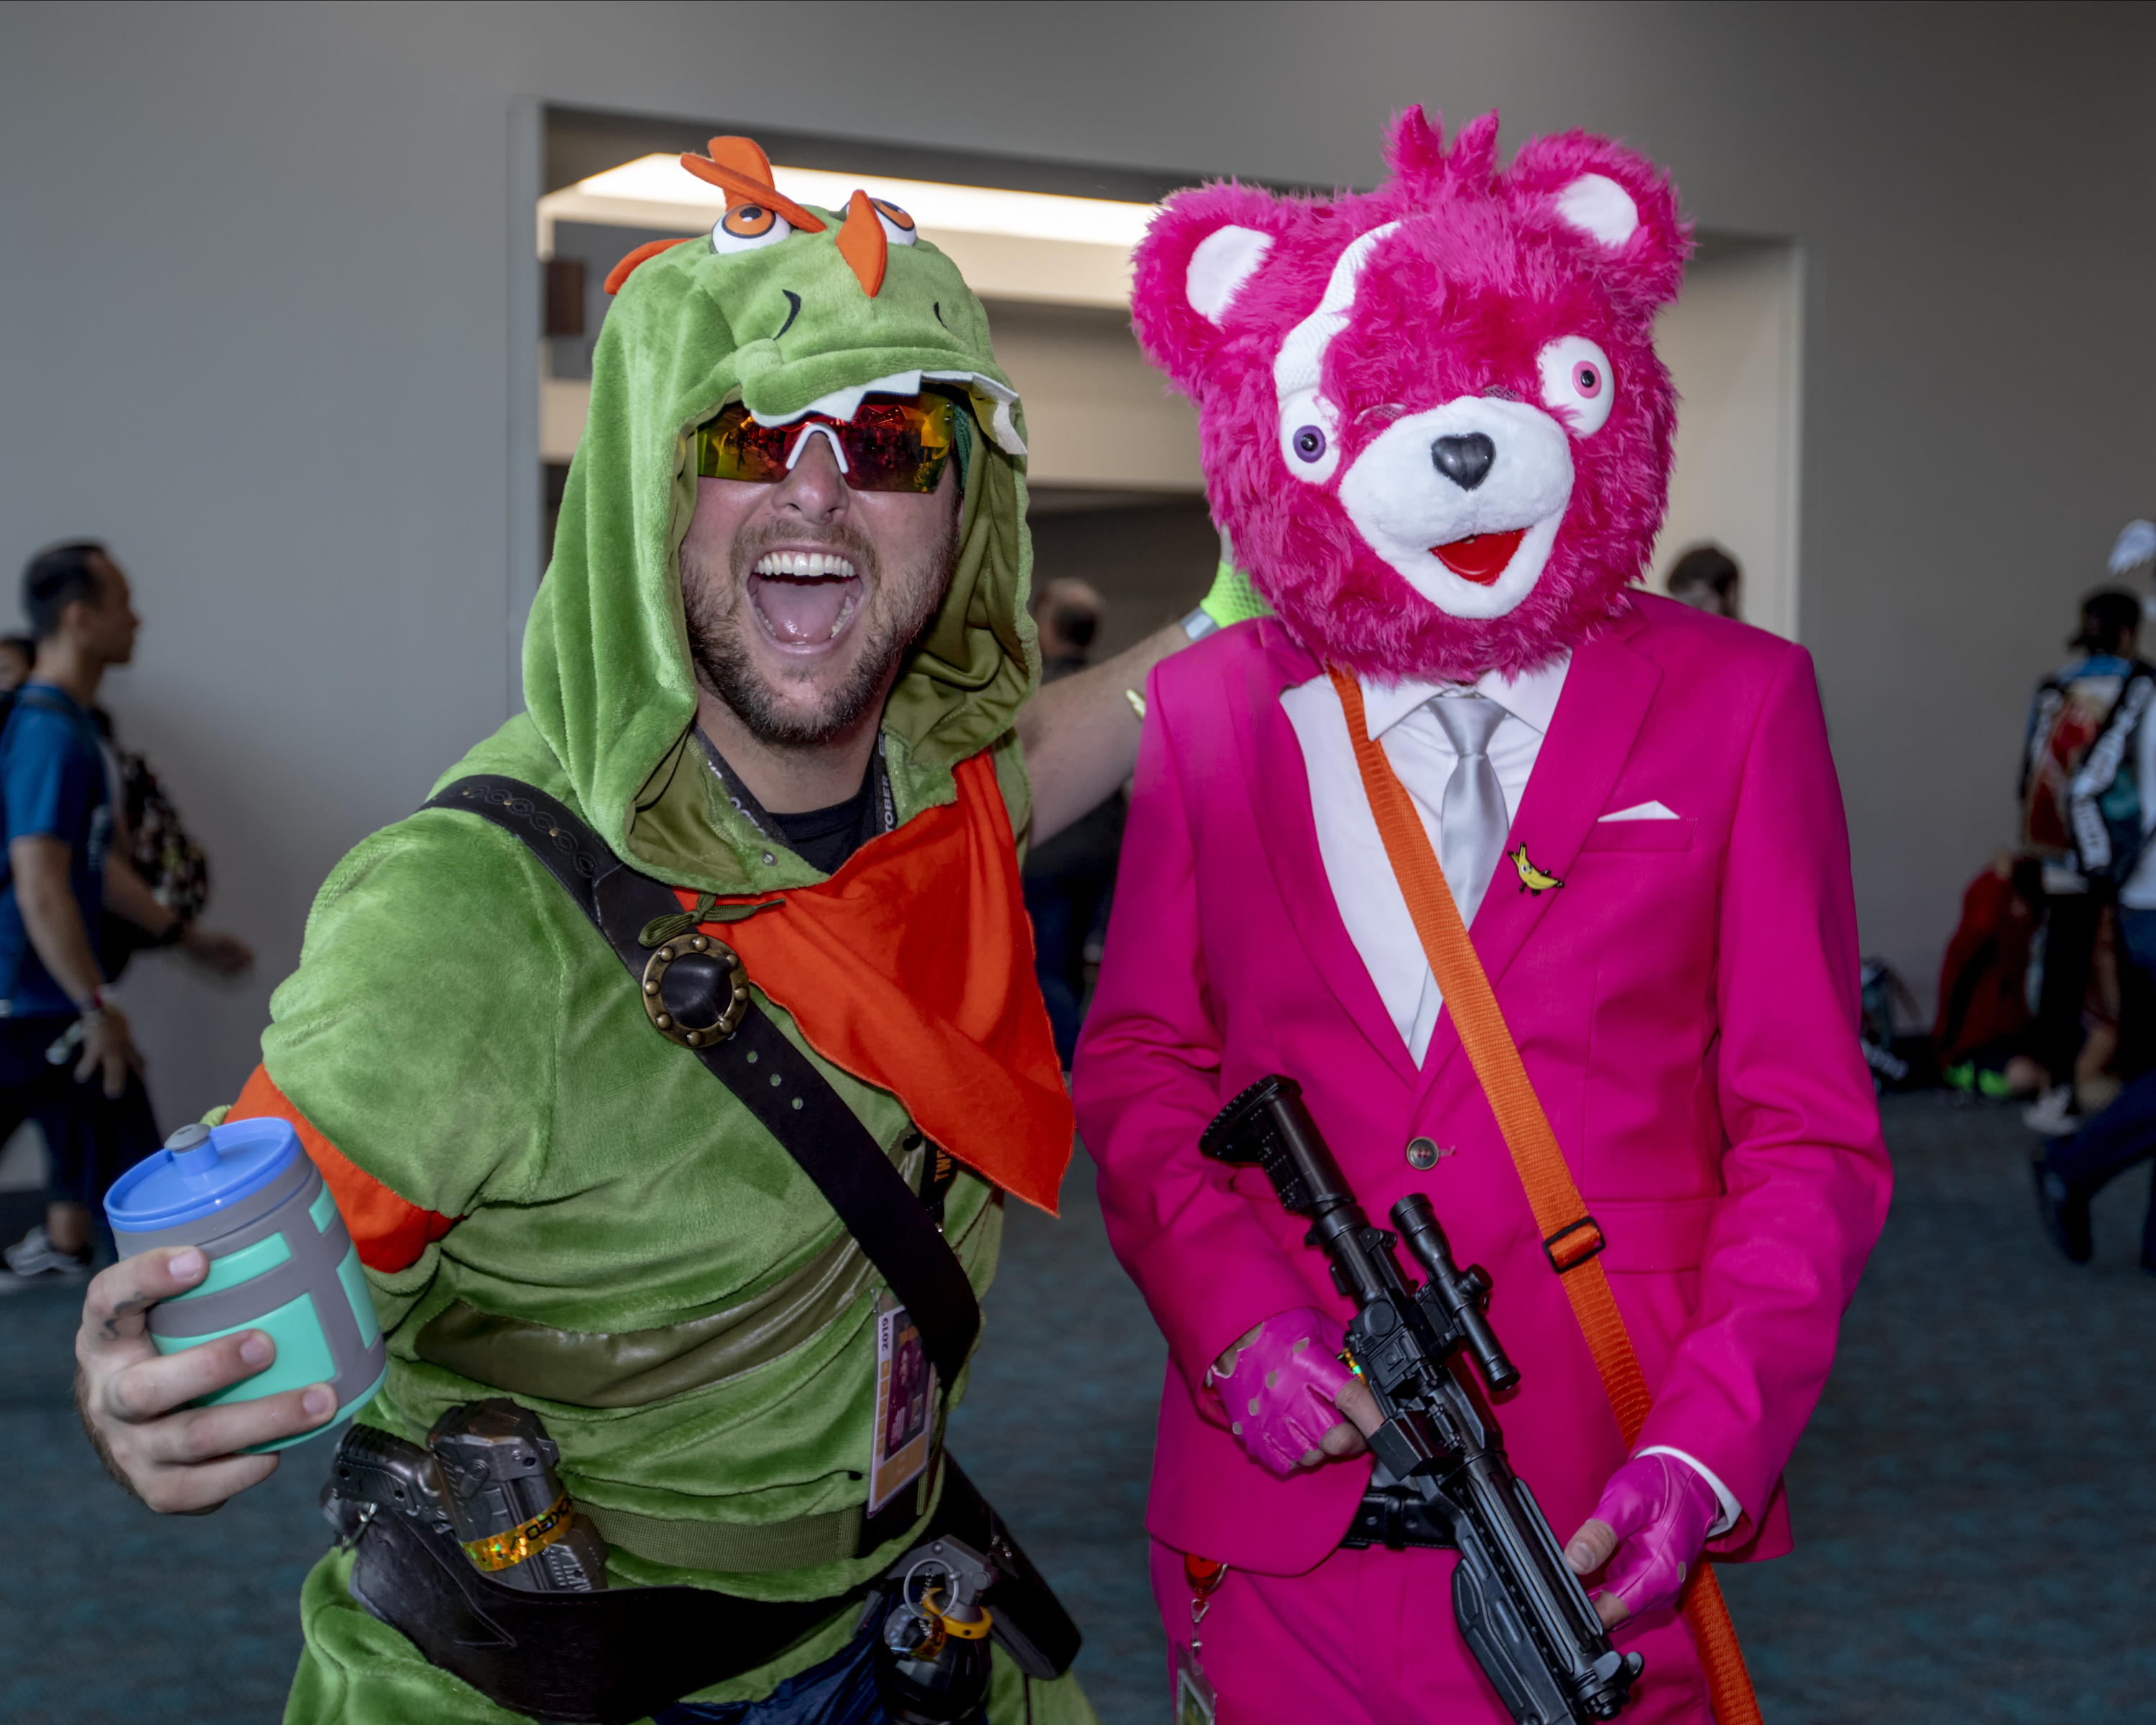 Halloween Cosplay 2020 2020′s most popular Halloween costumes in Upstate NY: Utica may